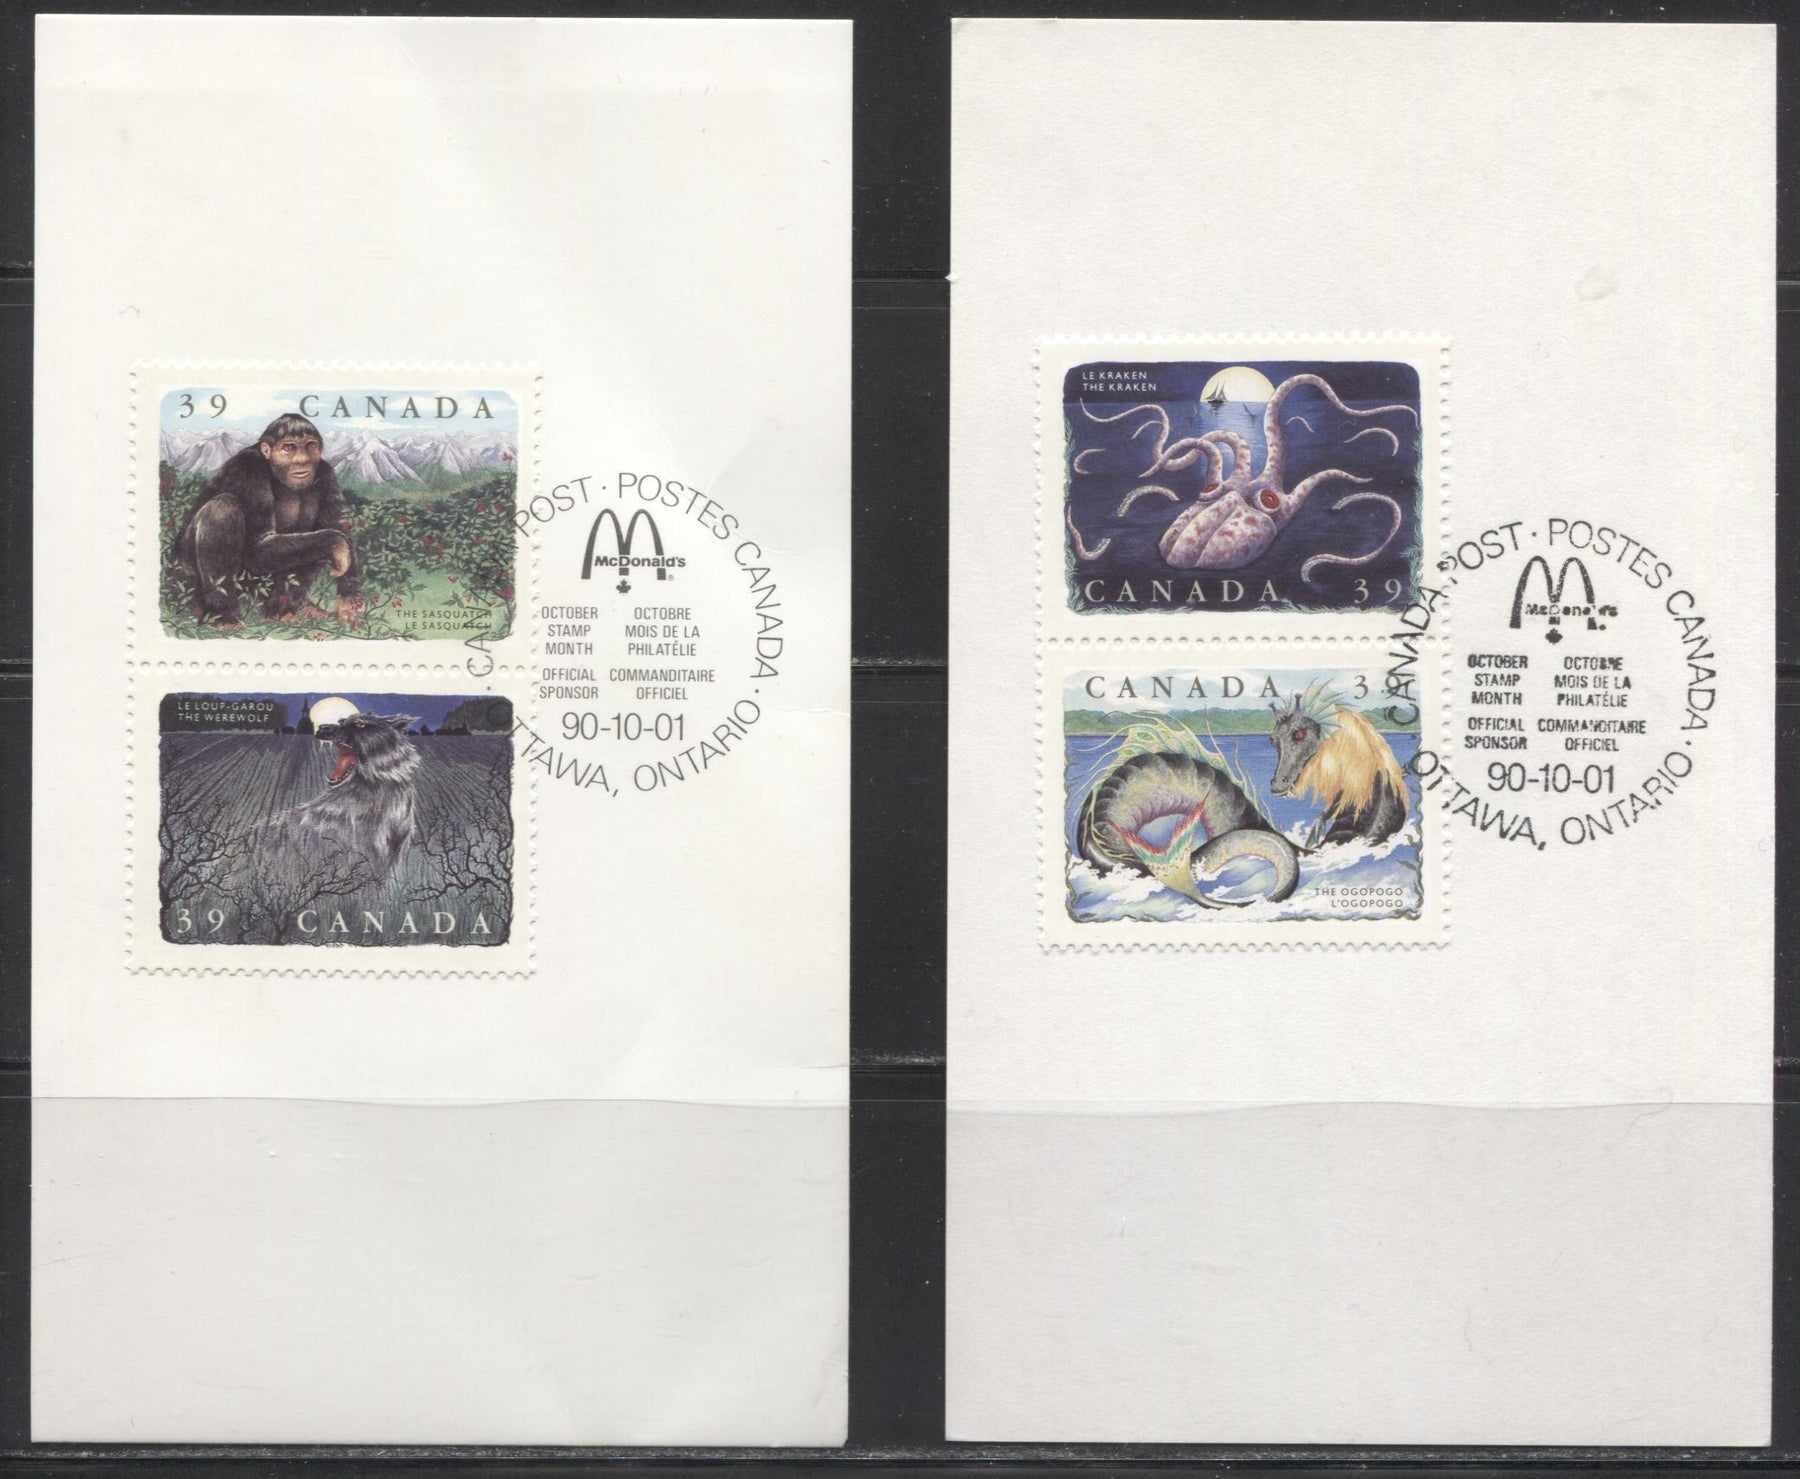 Canada #1292a-d 39c Multicoloured, 1990 Legendary Creatures Issue, Two Souvenir Cards Franked With Examples of the Scarce Perf. 12.5 x 12